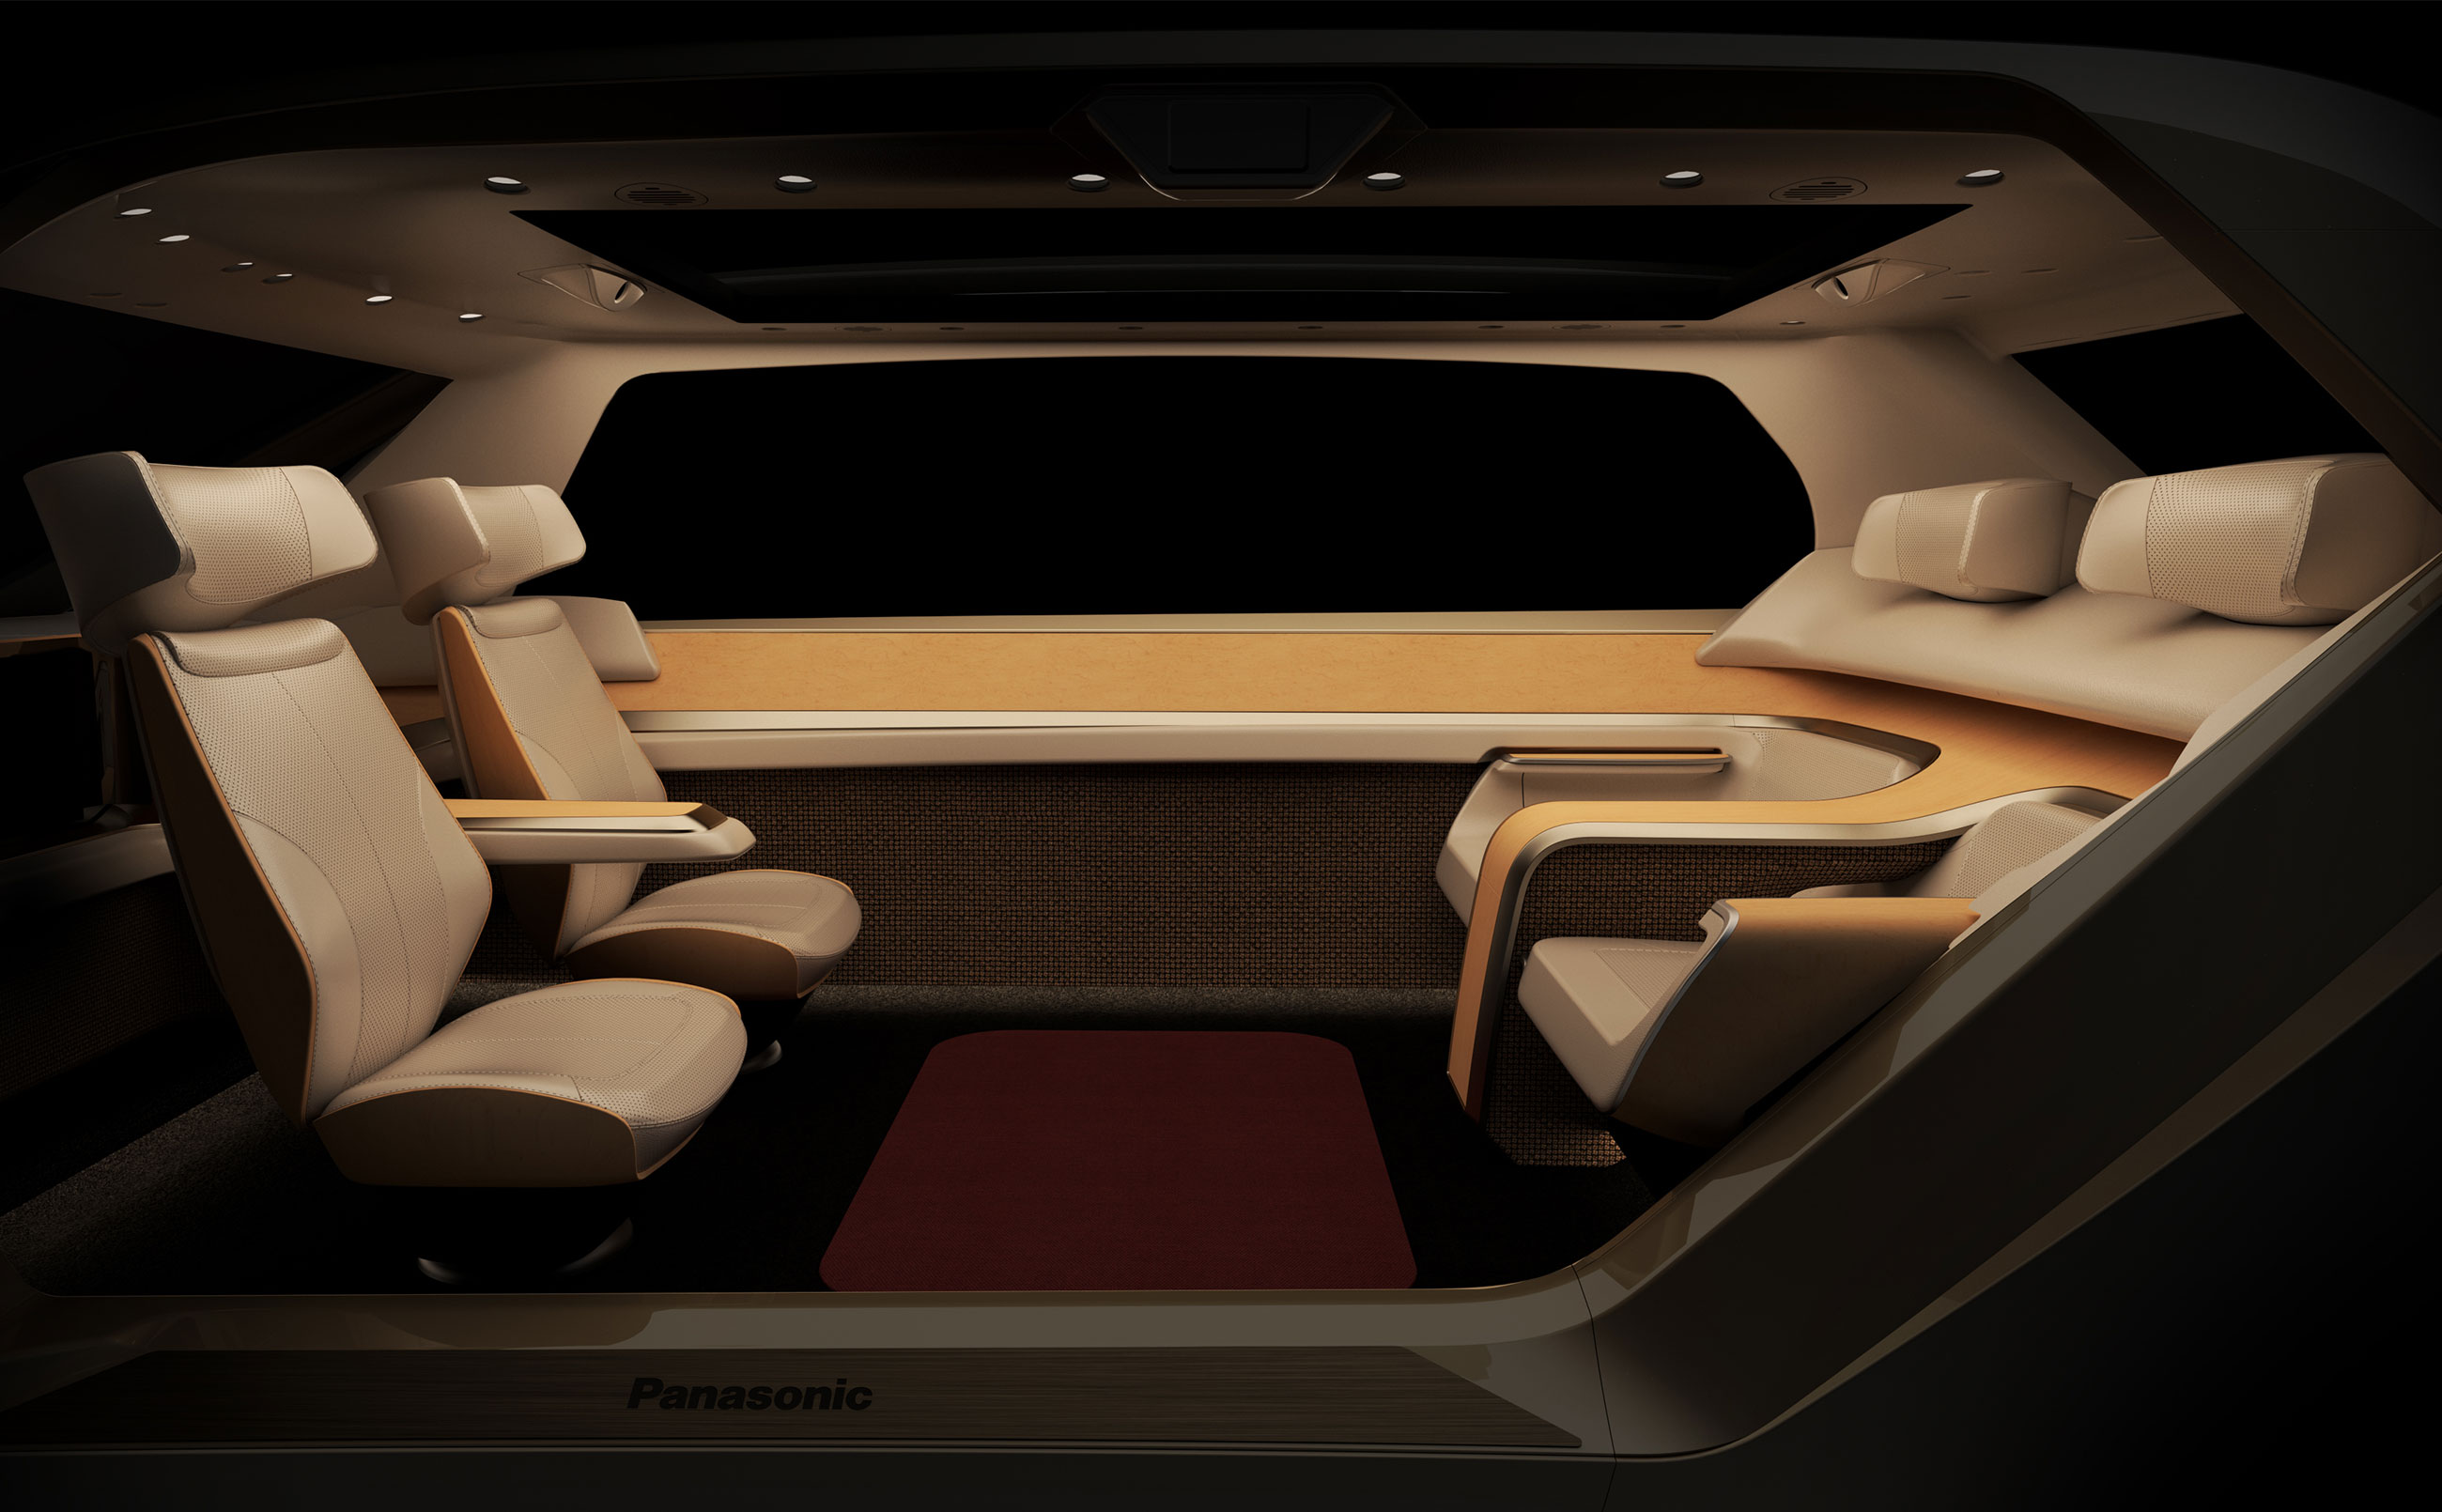 The Future for Car Mobility - Panasonic Design - Panasonic